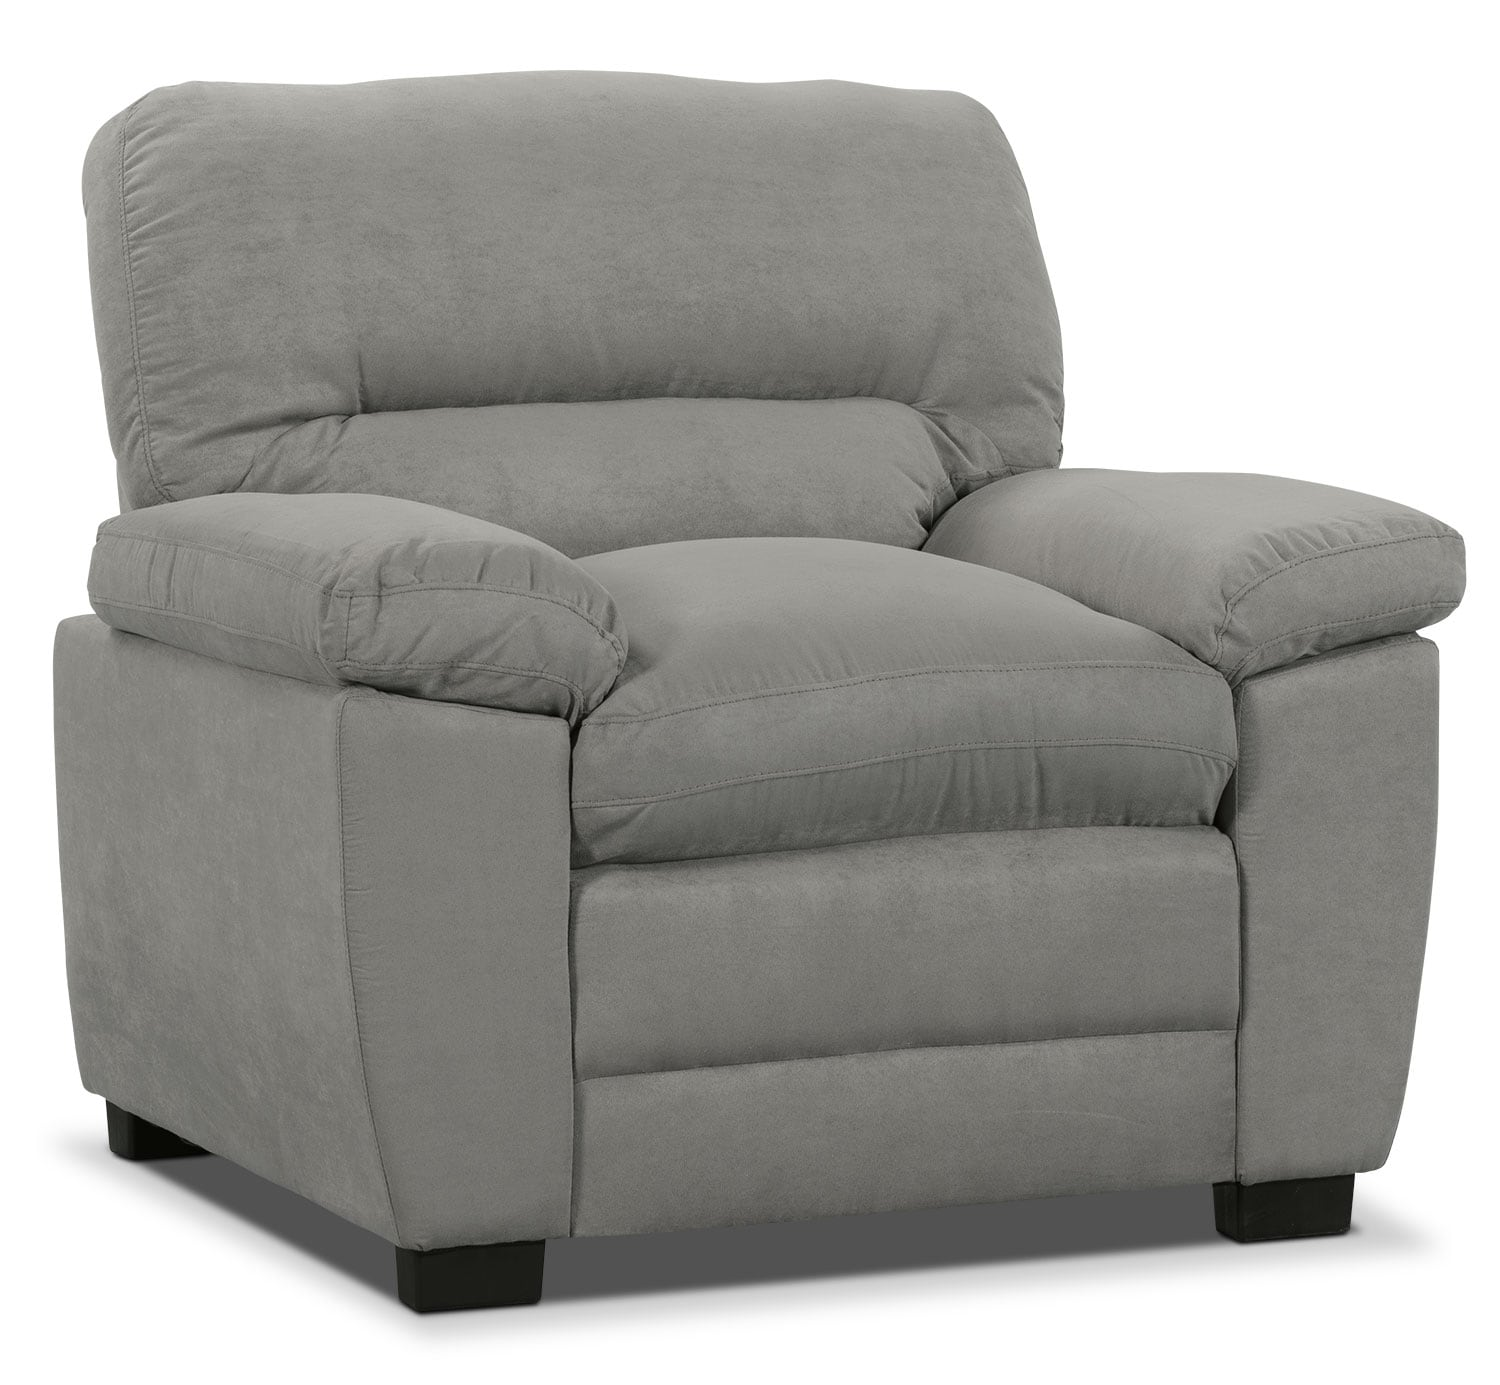 Peyton Microsuede Chair - Grey